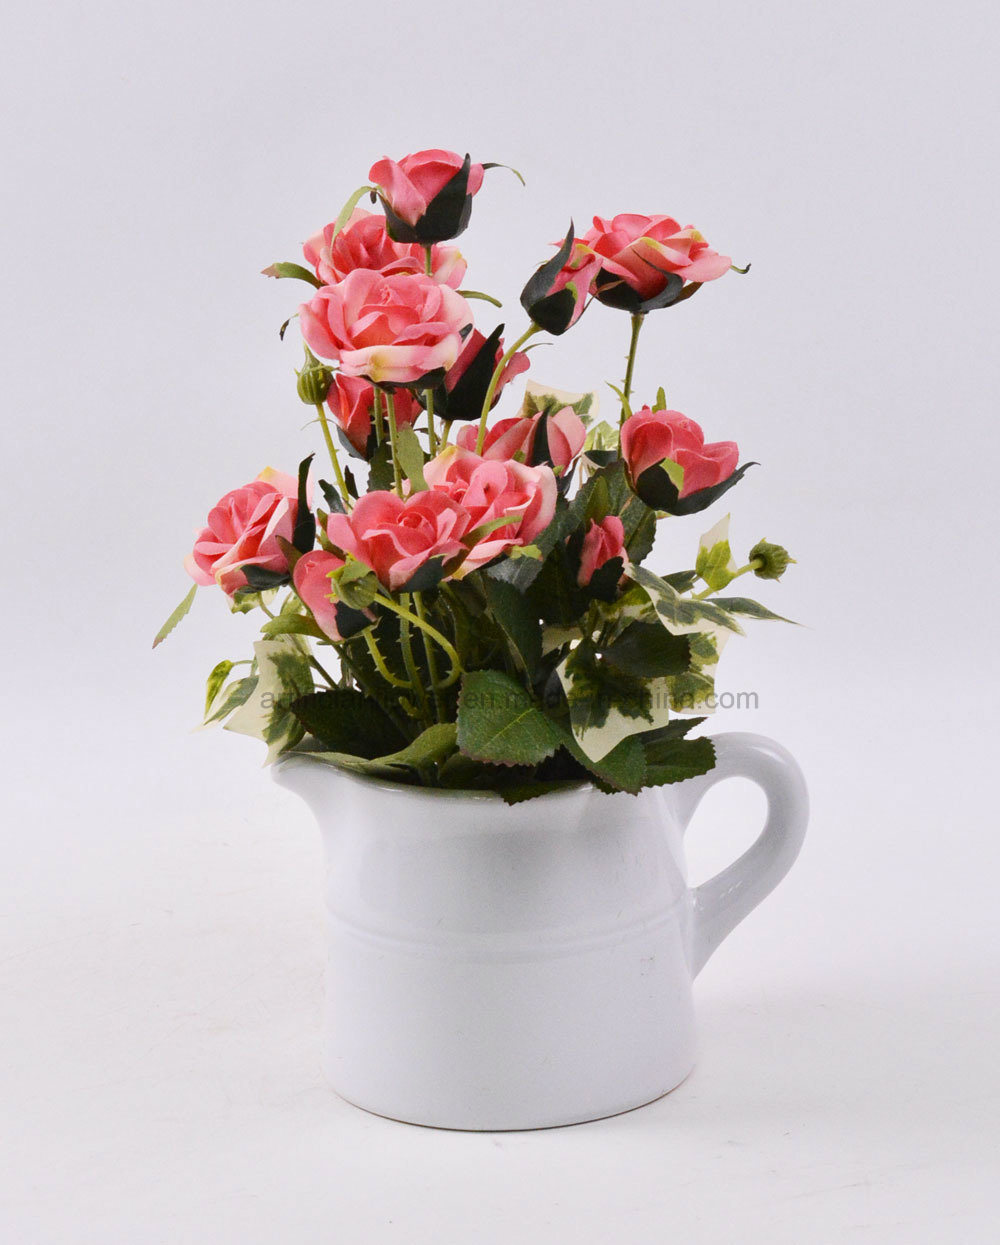 Decorations Vivid Rose Bouquet in Ceramic Kettle-Shaped Potted